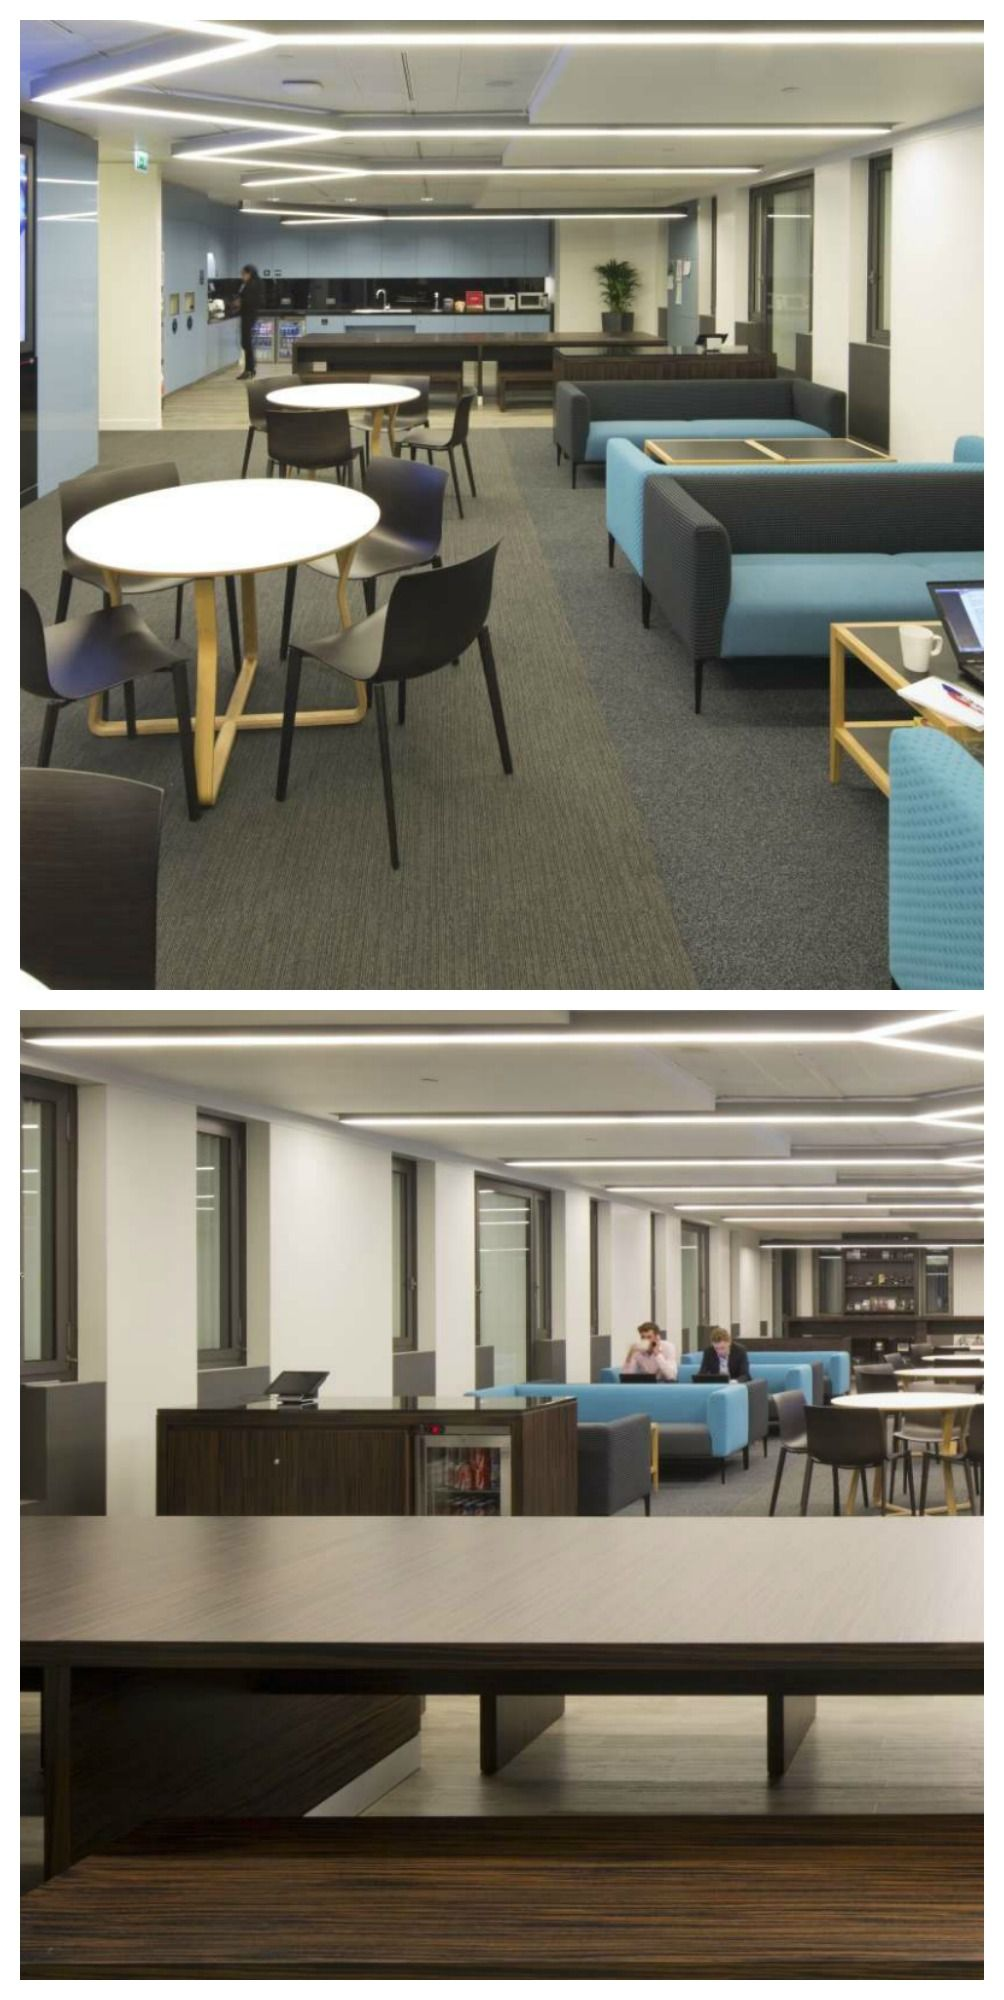 This Cool Staff Breakout Space And Workplace Kitchen At Financial Company AT Kearney Has Charcoal Grey Teal Coloured Sofas Cafe Style Seating